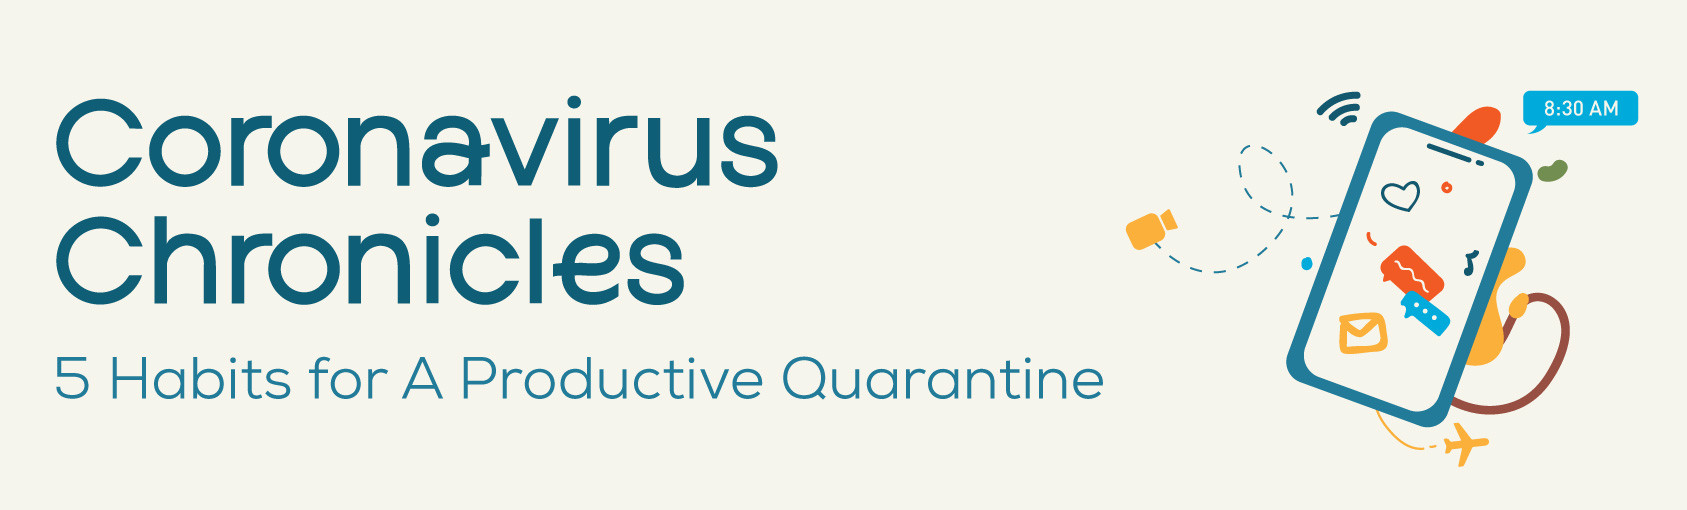 Coronavirus Chronicles: 5 Habits for A Productive Quarantine banner